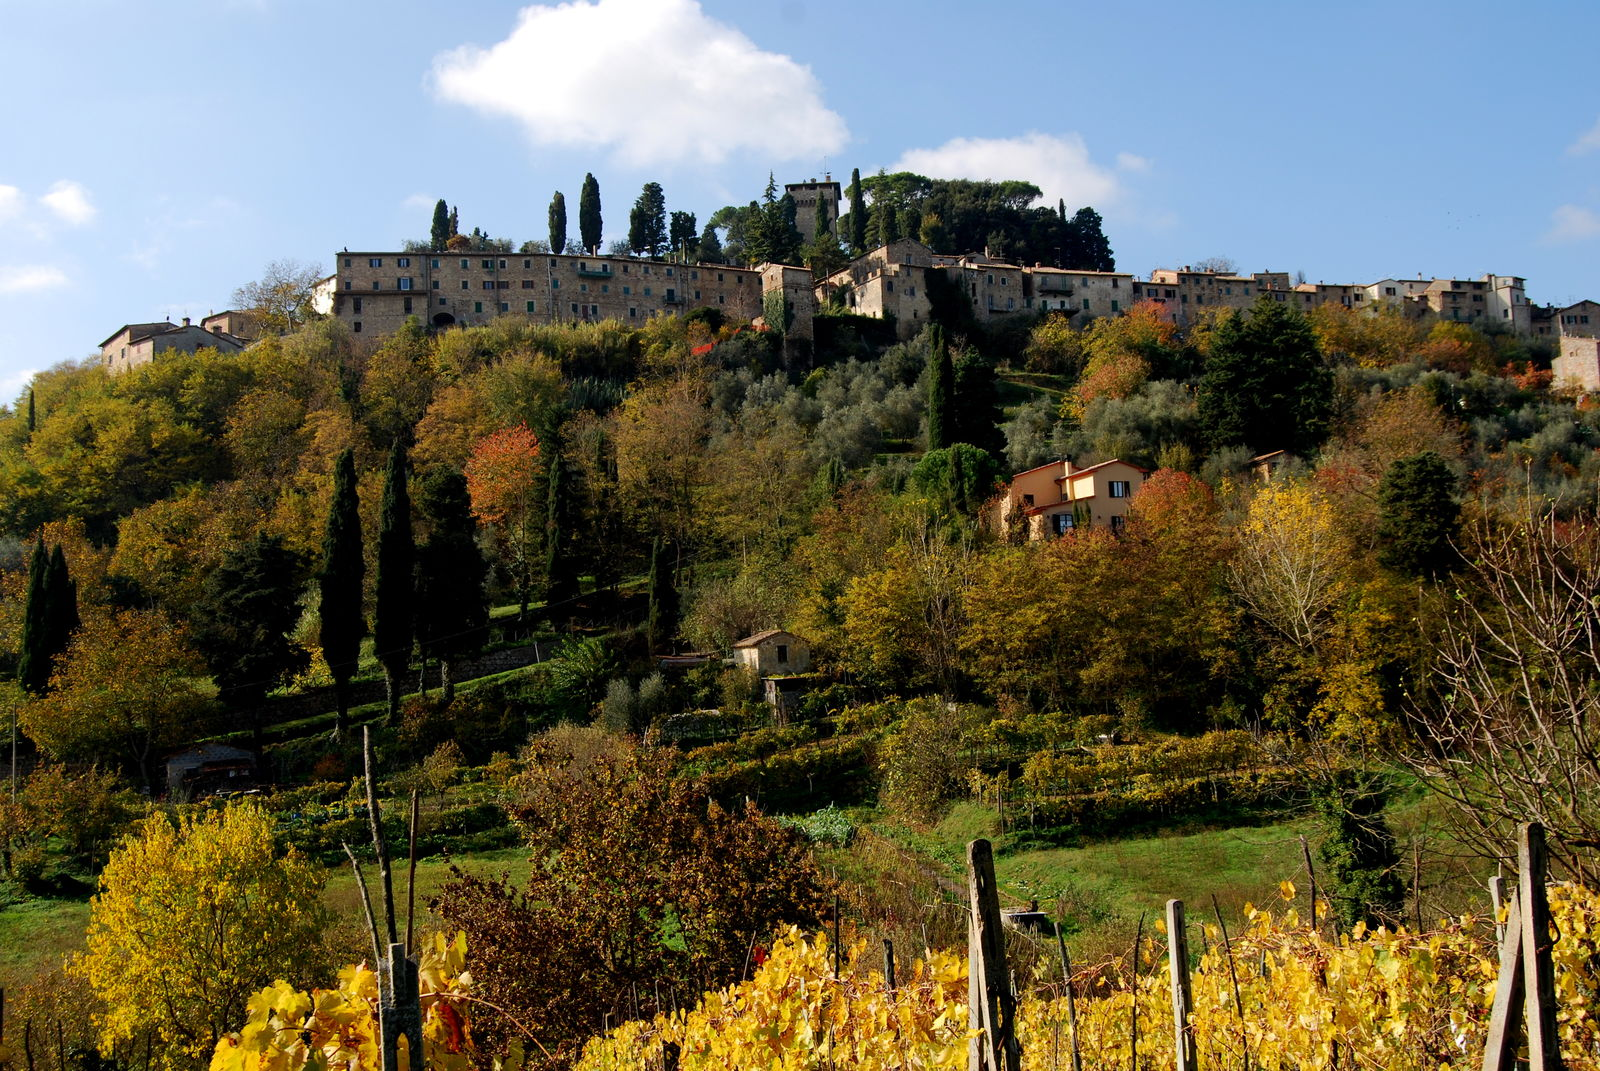 Cetona - One of Italy's most beautiful villages